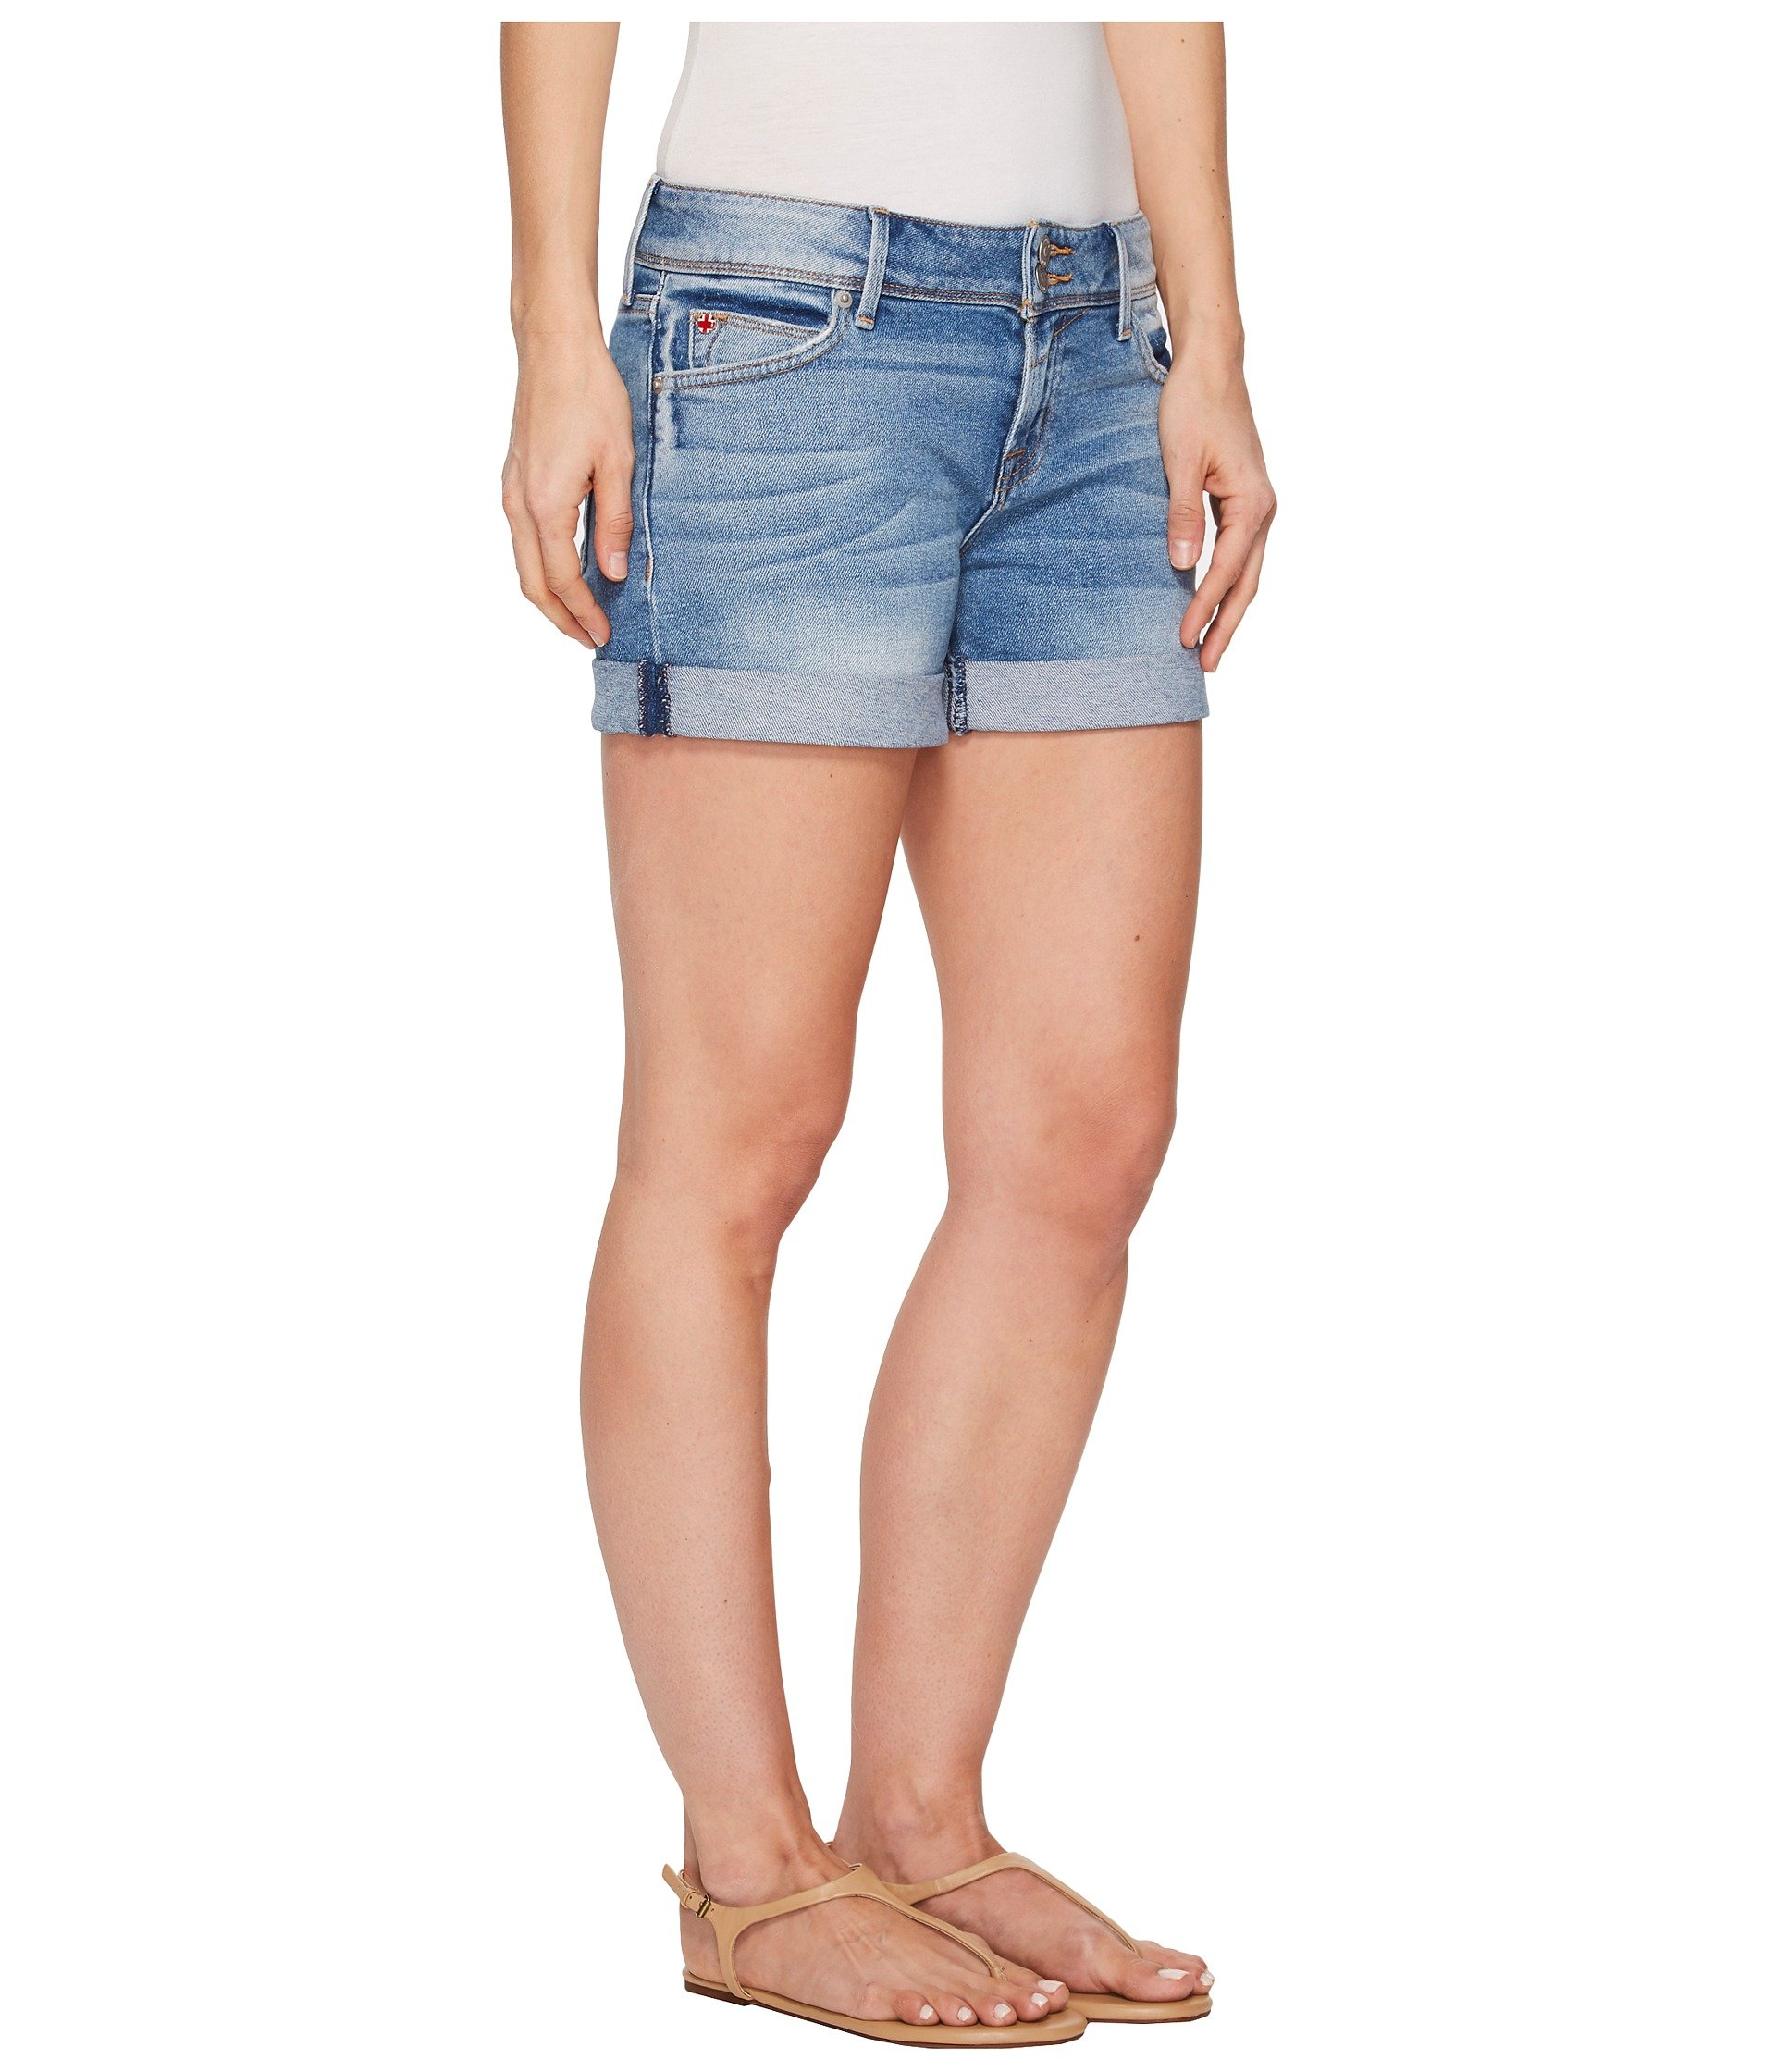 Hudson Jeans Women's Croxley Mid Thigh Flap Pocket Short, Rolling Hills, 31 by Hudson Jeans (Image #5)